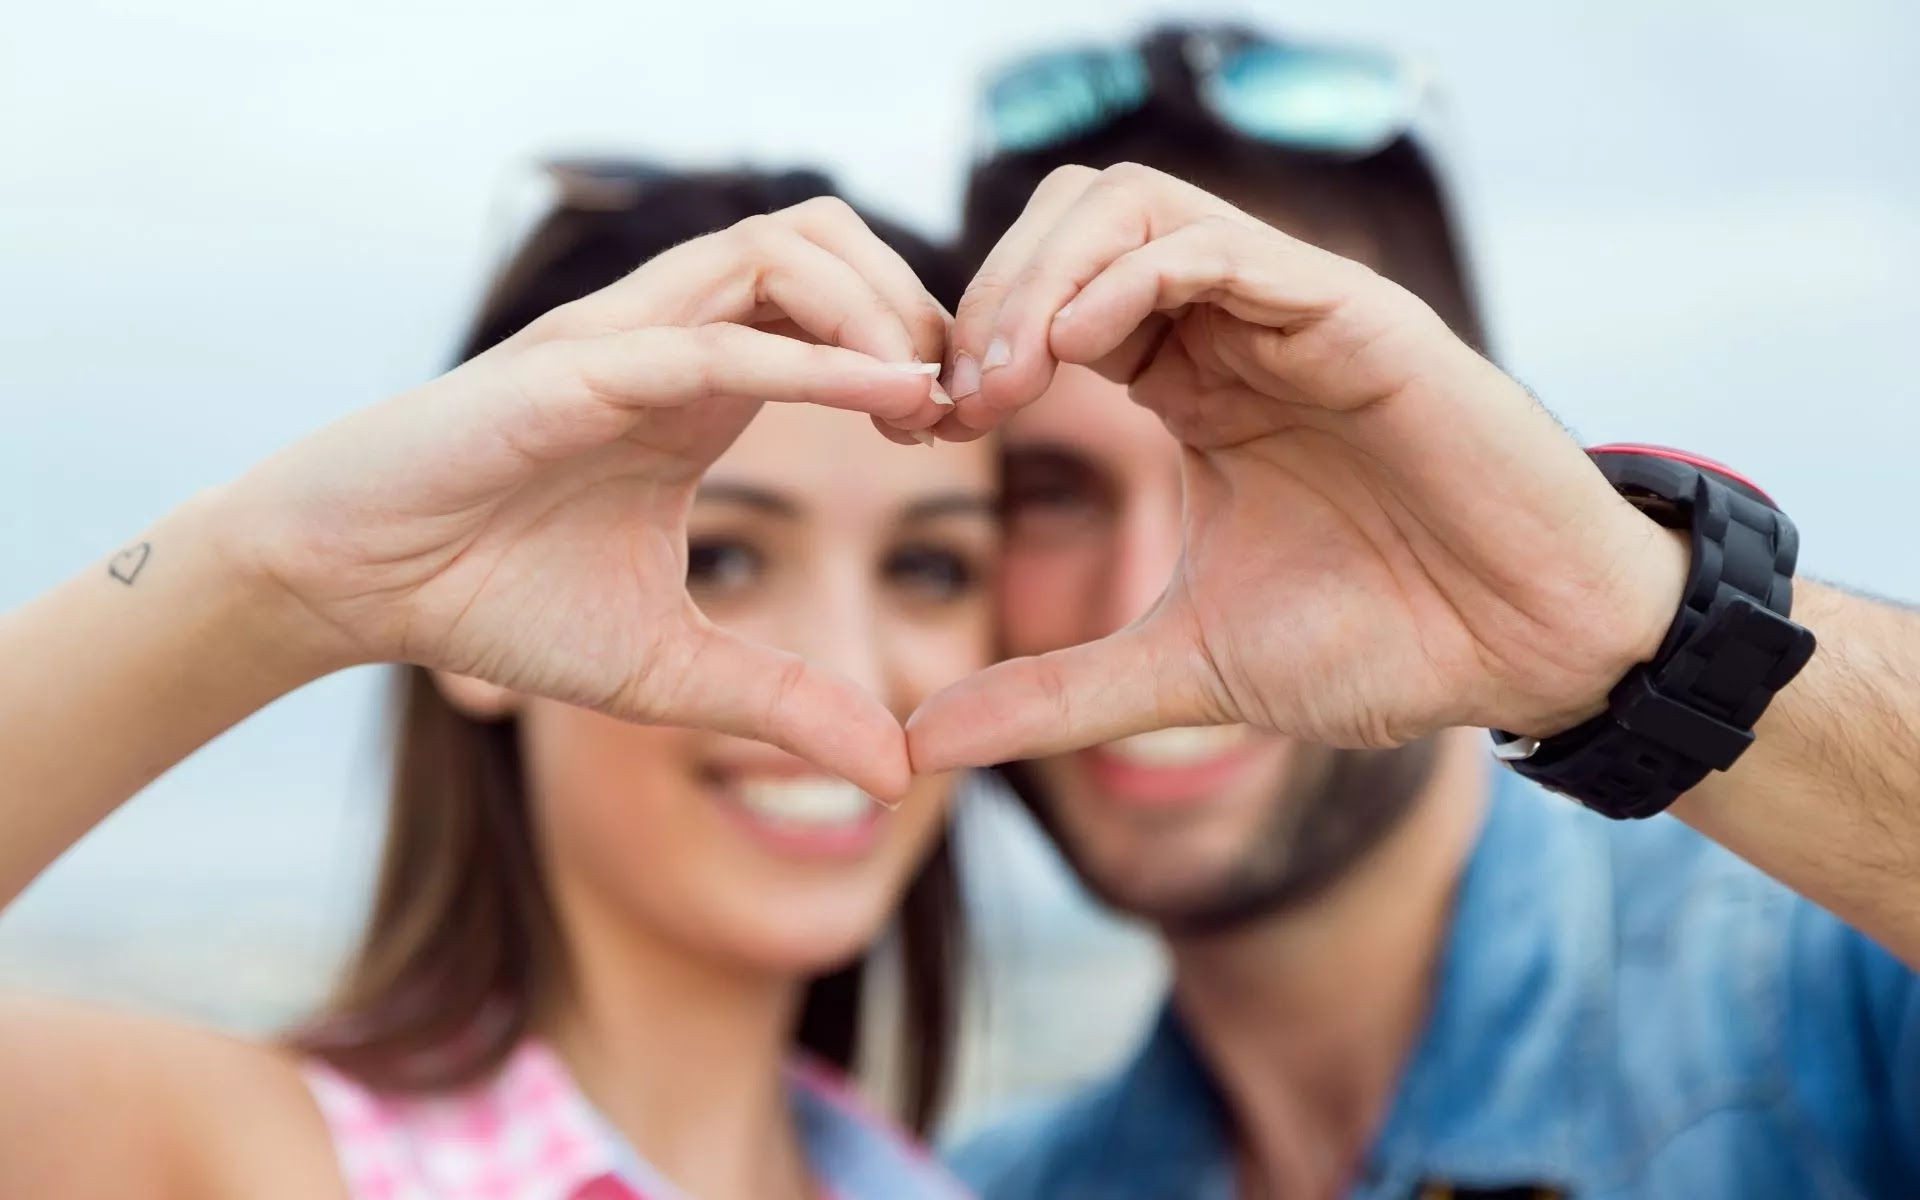 heart sign from hand love couple pic